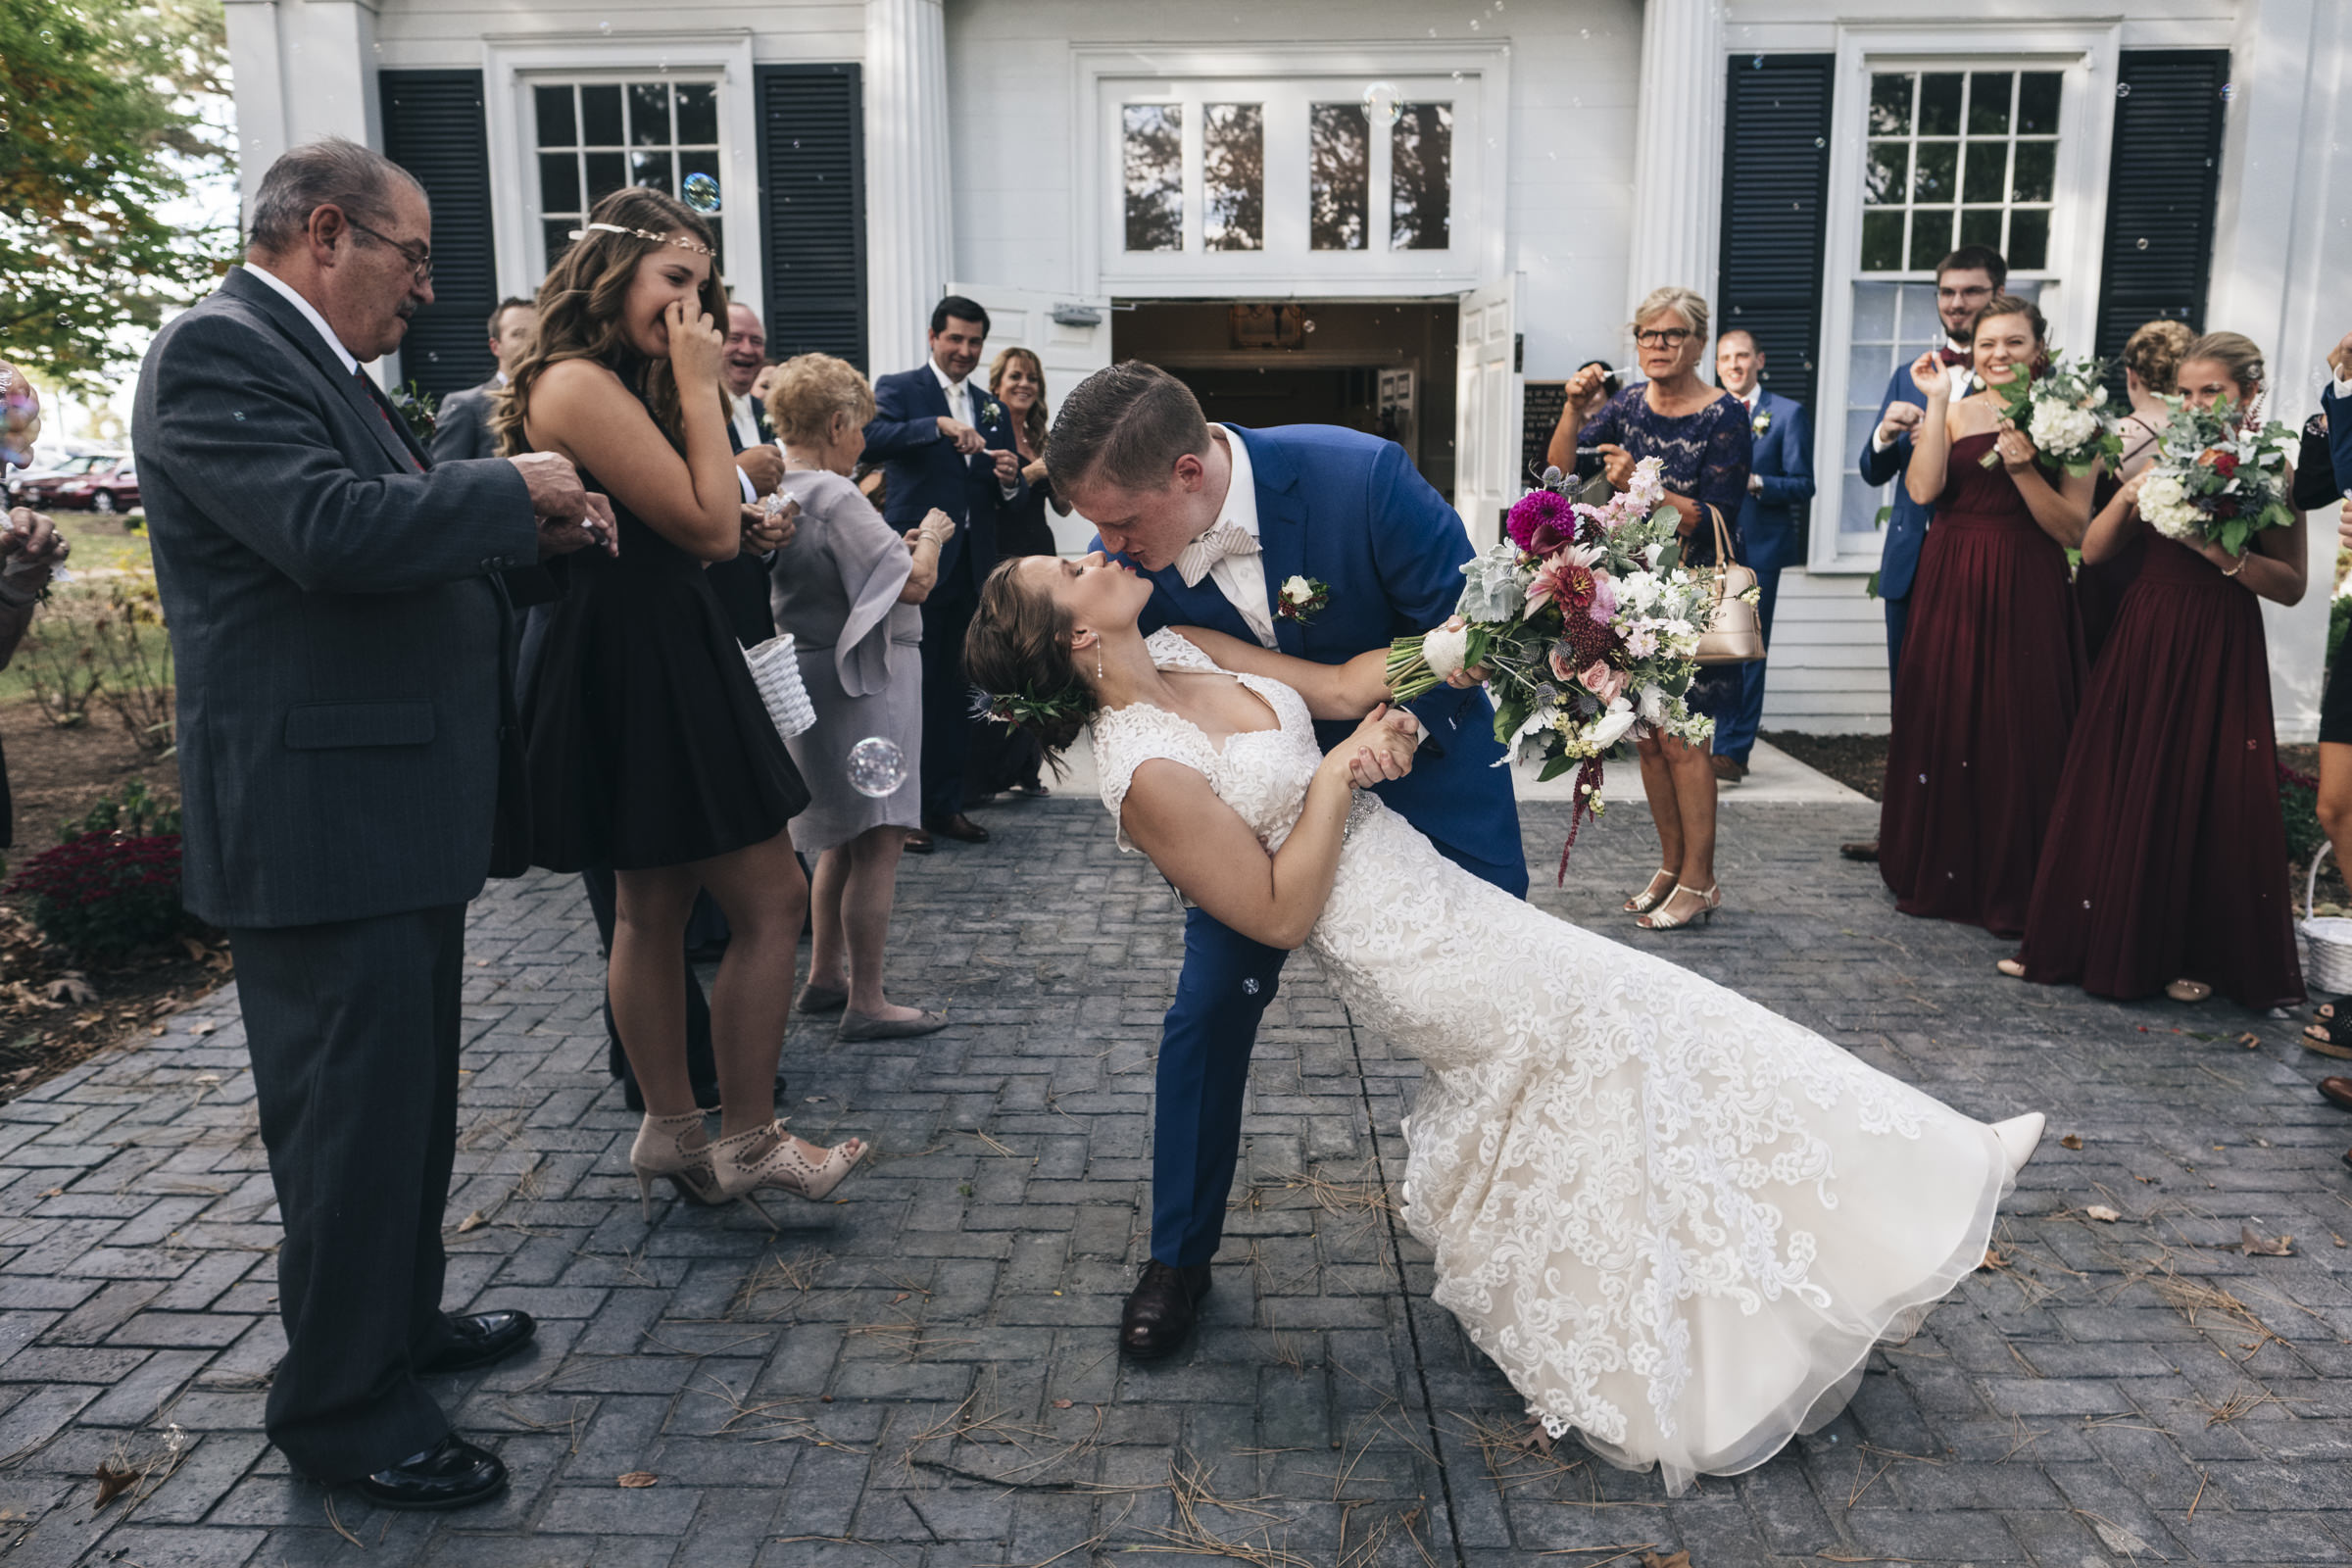 Grand bubble exit from wedding ceremony planned by Lifestyle Wedding Planning